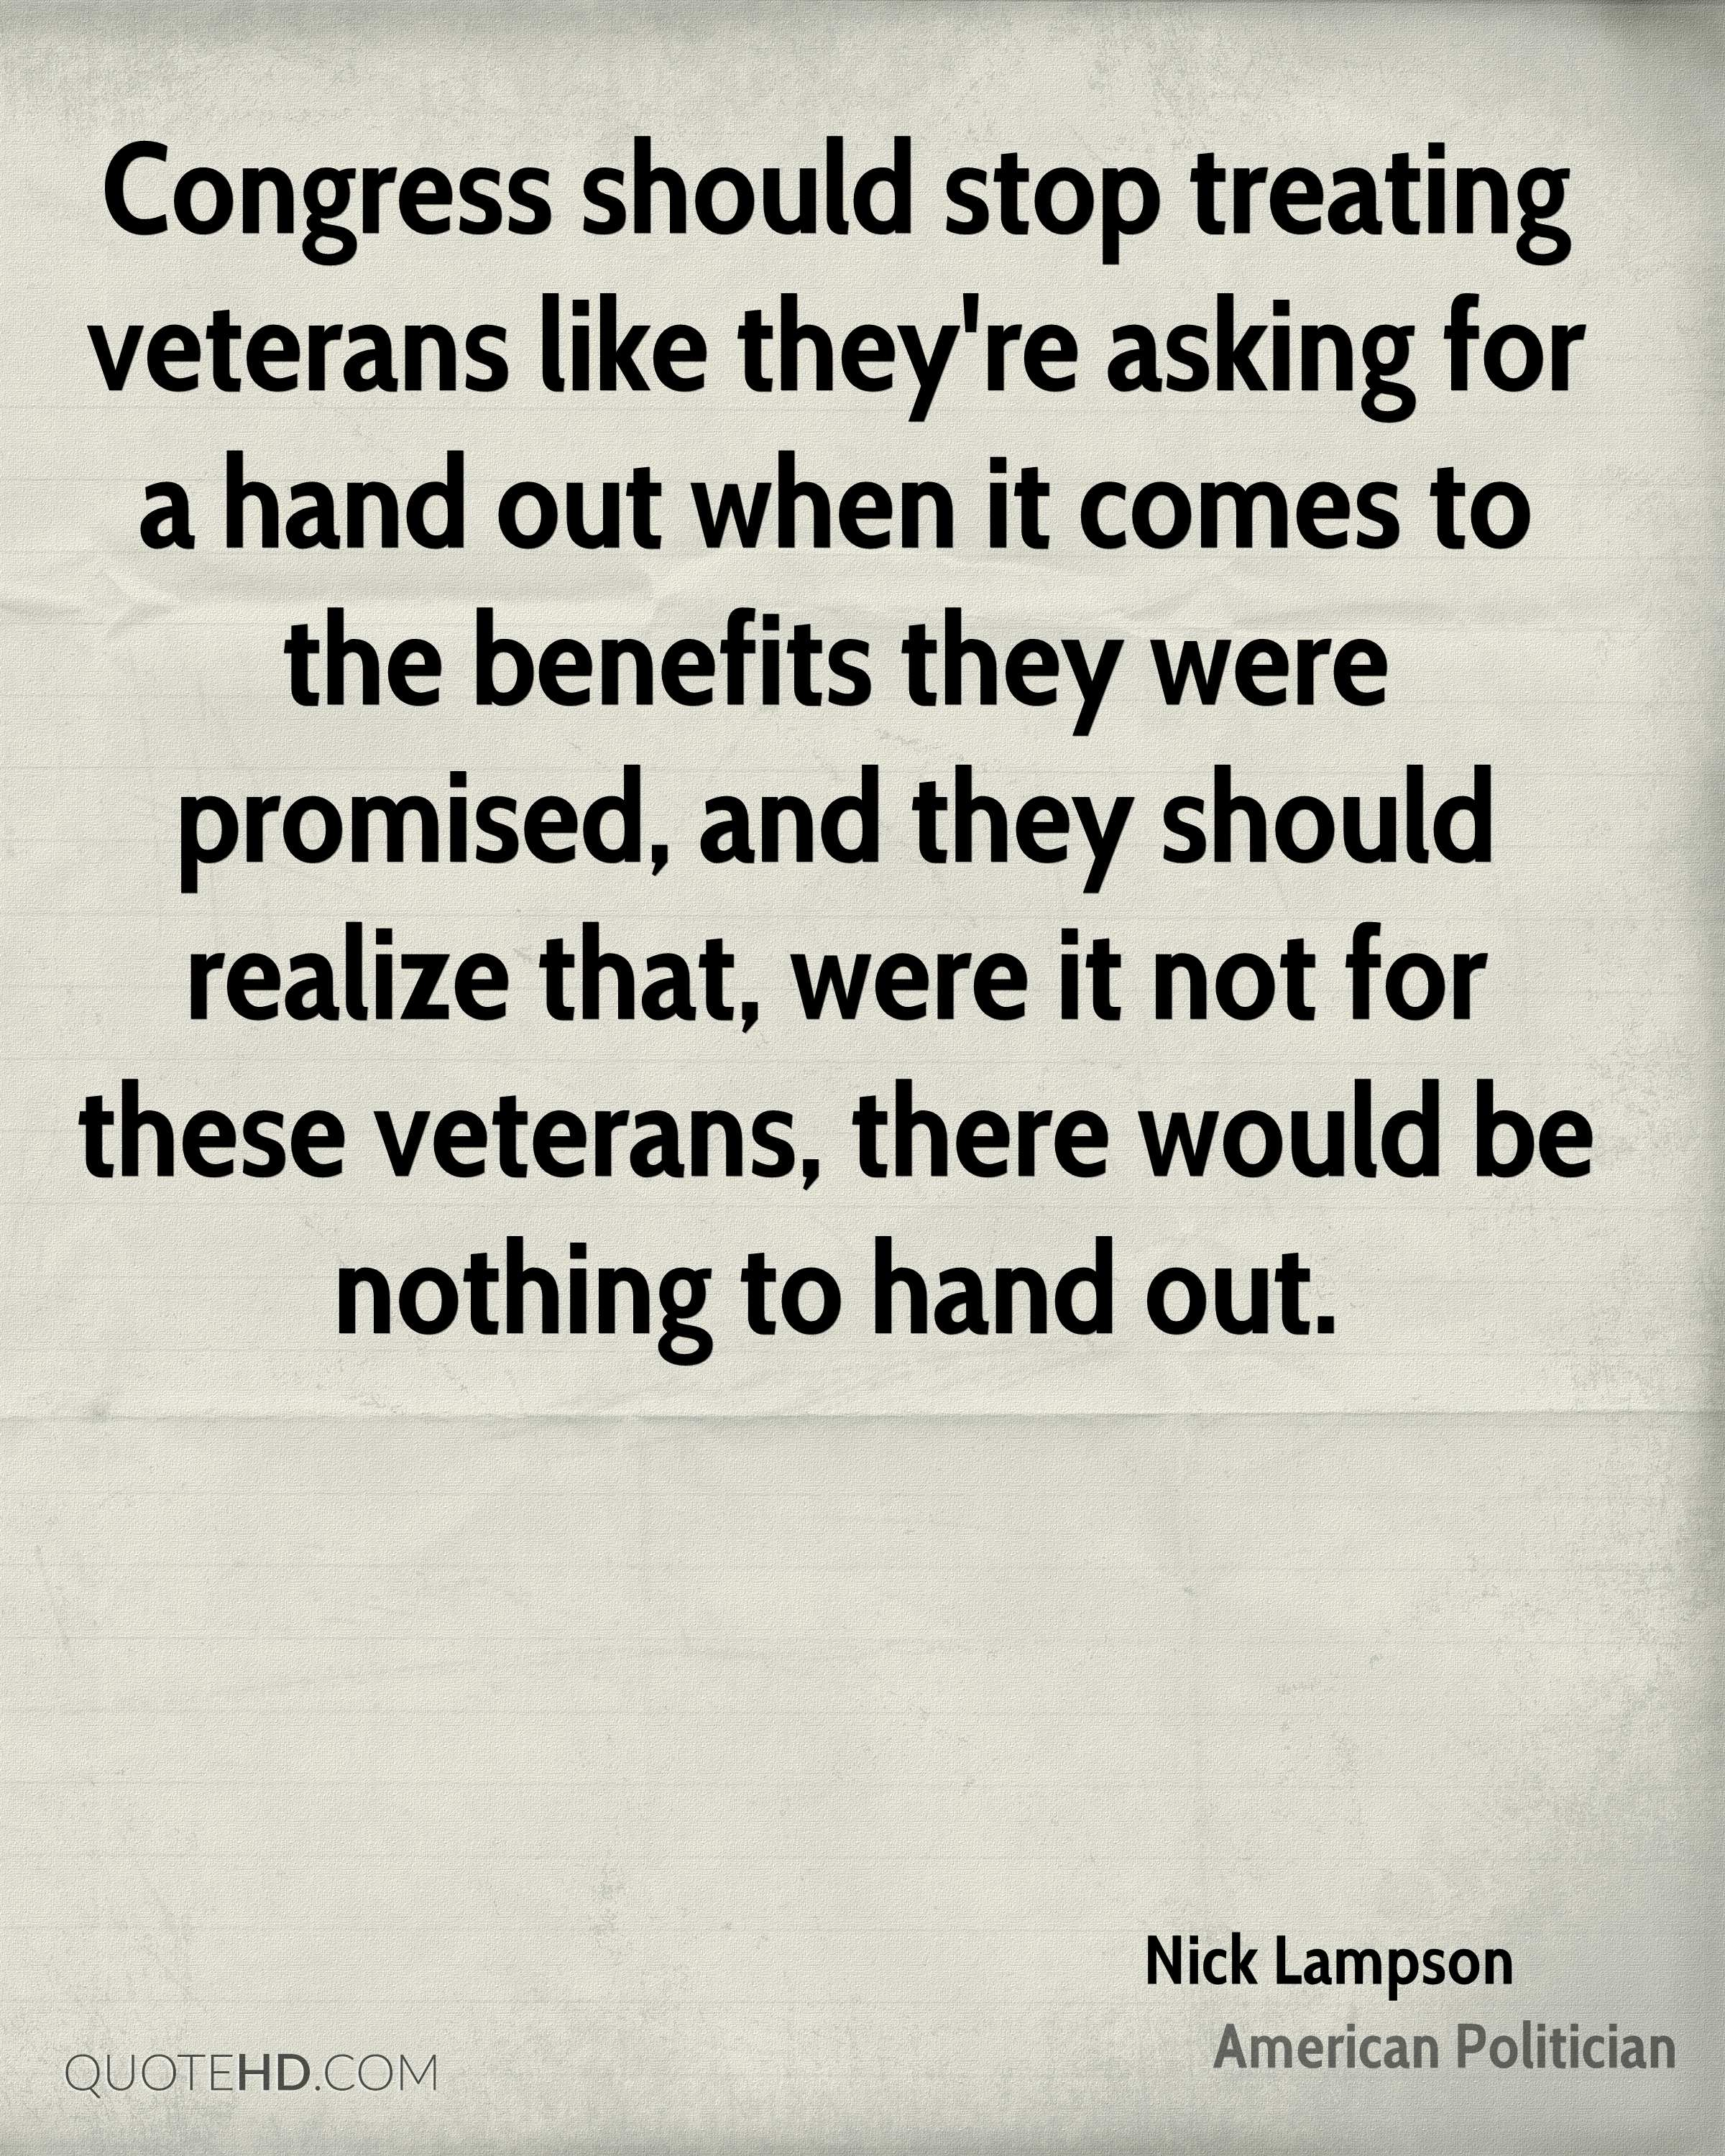 Congress should stop treating veterans like they're asking for a hand out when it comes to the benefits they were promised, and they should realize that, were it not for these veterans, there would be nothing to hand out.